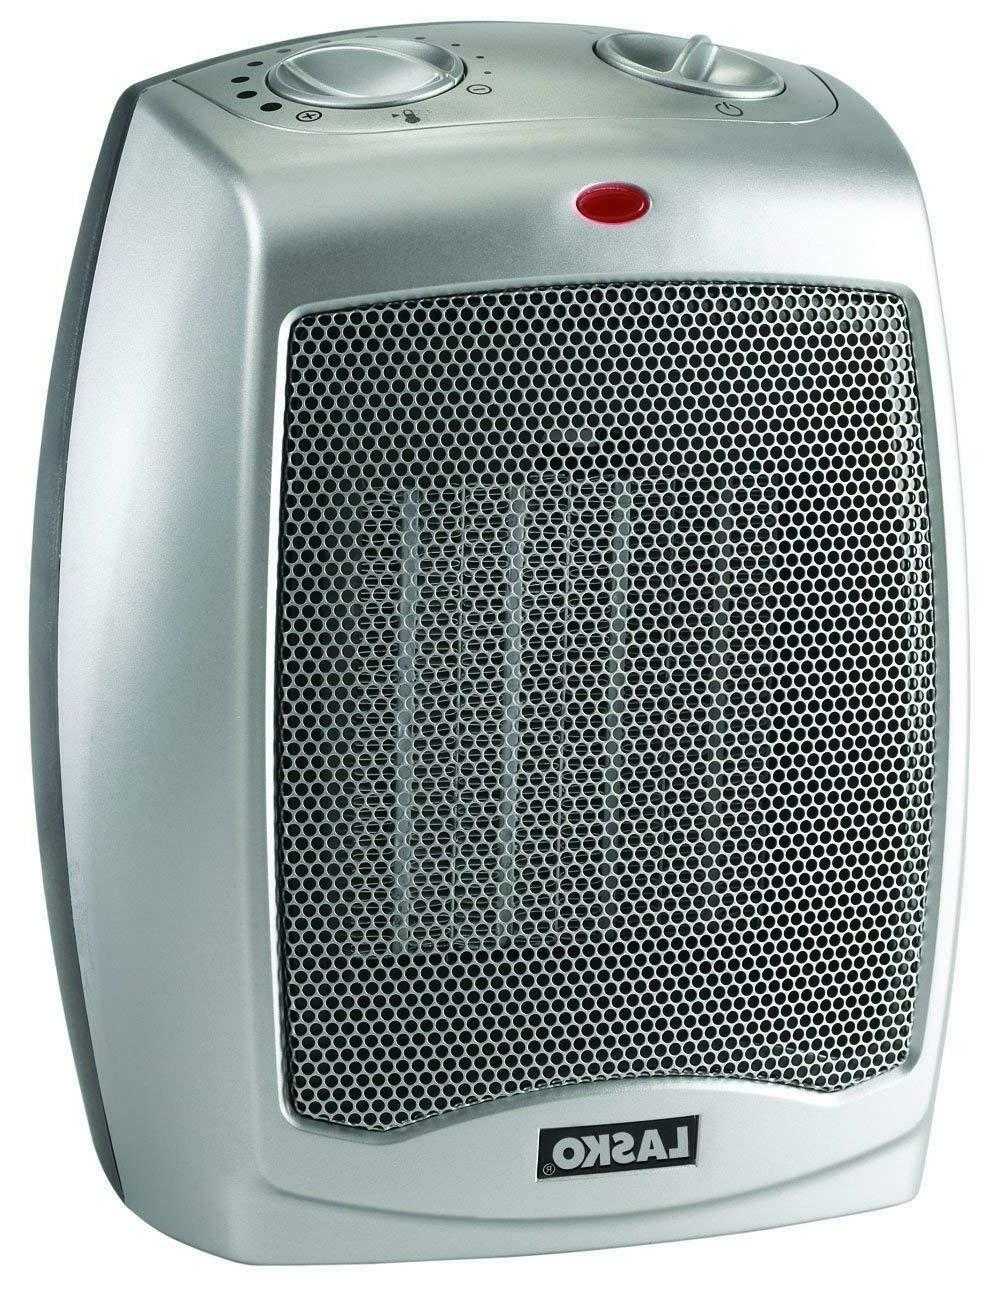 new 754200 ceramic portable space heater